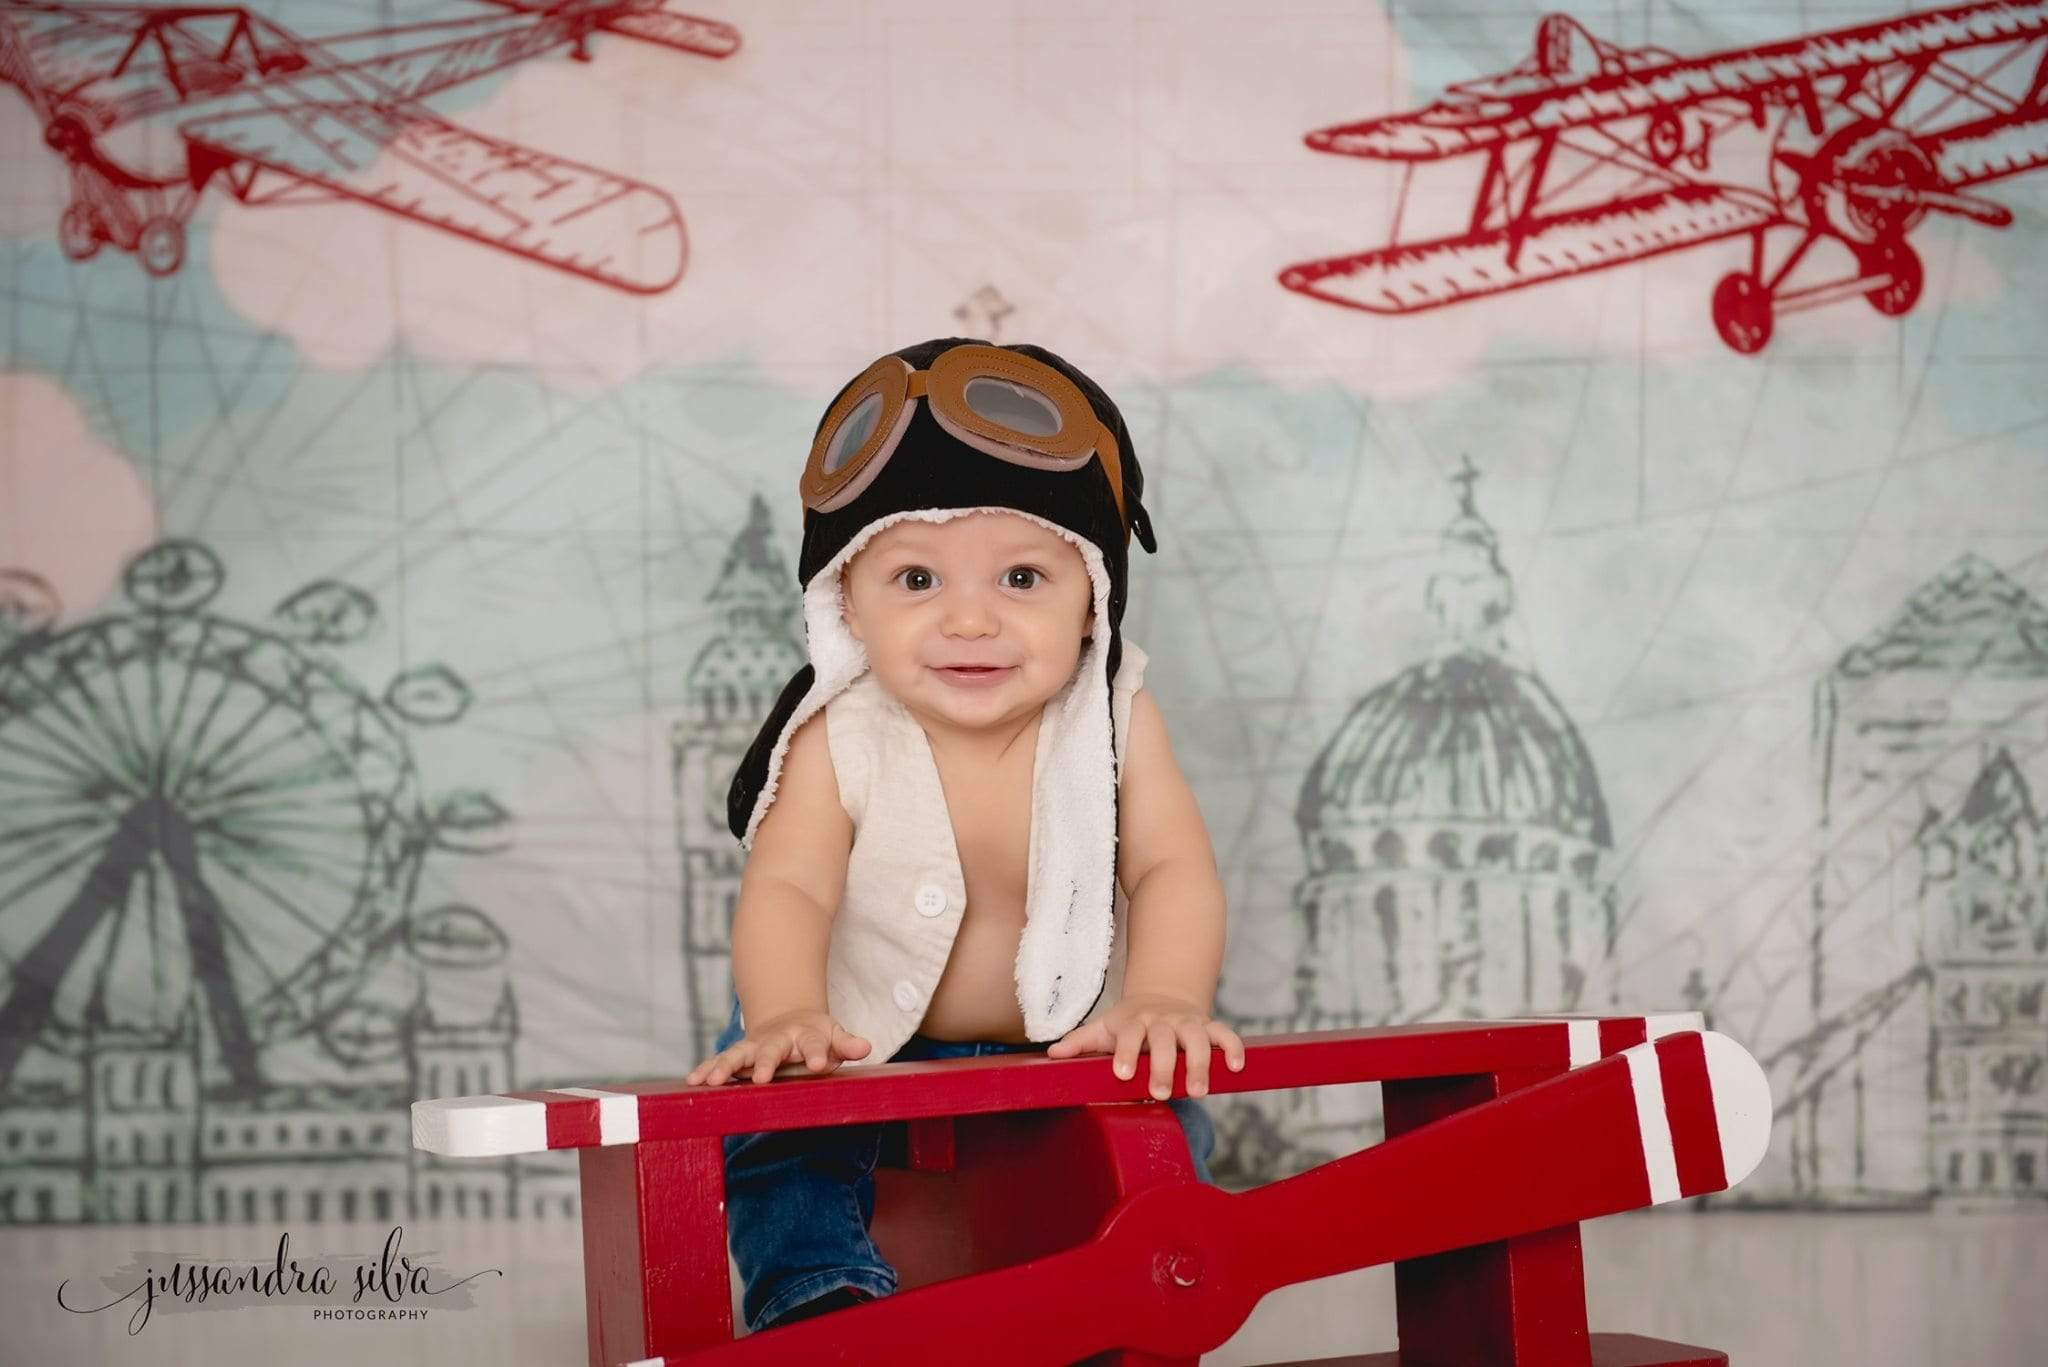 Load image into Gallery viewer, Katebackdrop£ºKate Vintage Biplanes over City Children Backdrop for Photography Designed by Amanda Moffatt